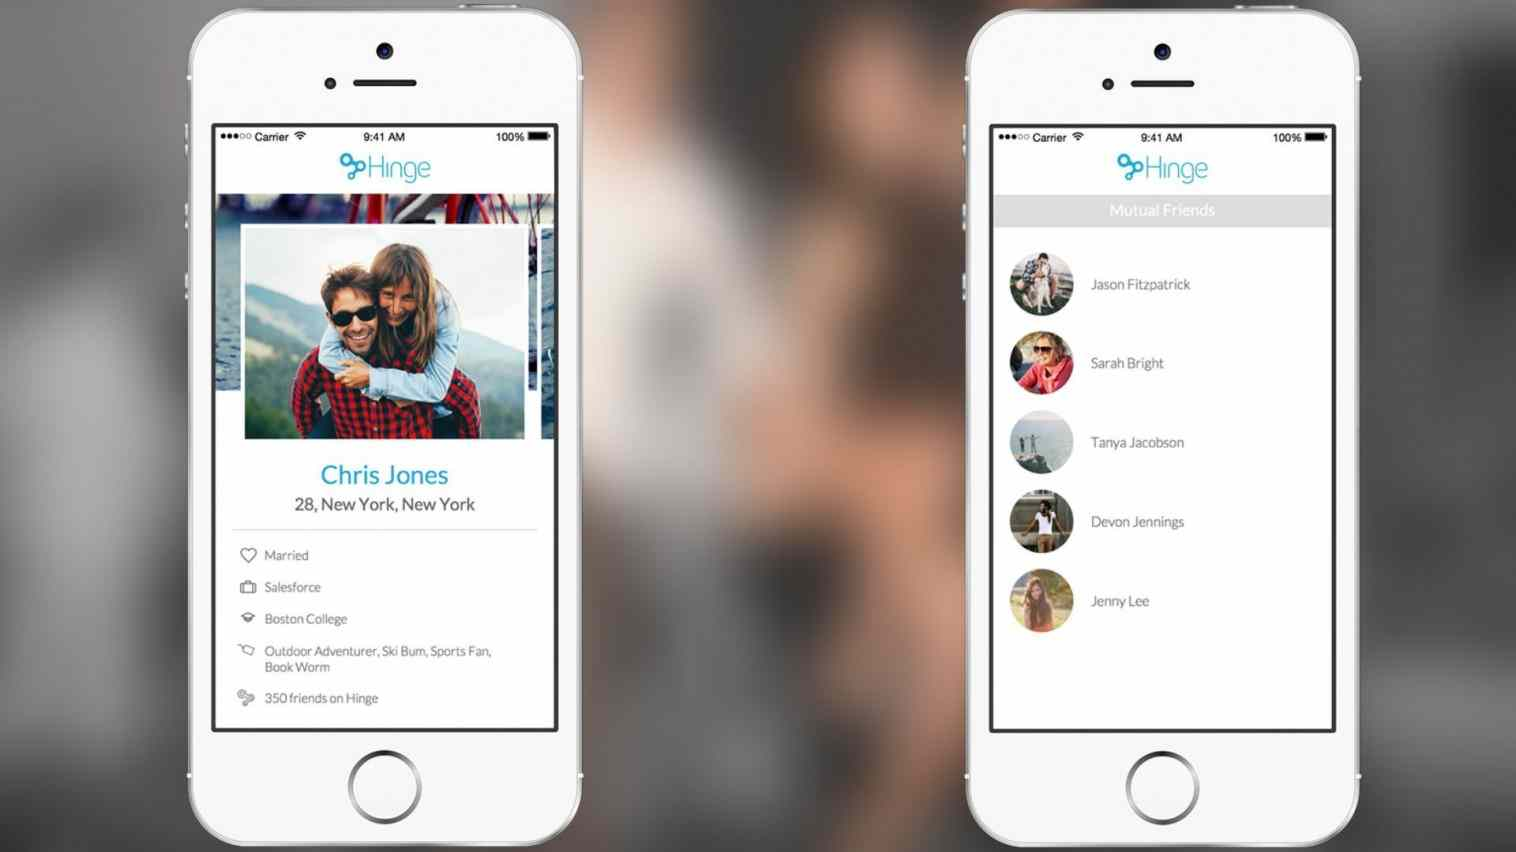 Hinge is a dating app that makes introductions through mutual friends on Facebook. It announced Wedneday, May 13, 2015, that it would begin to list relationship status in an effort to crack down on cheaters.